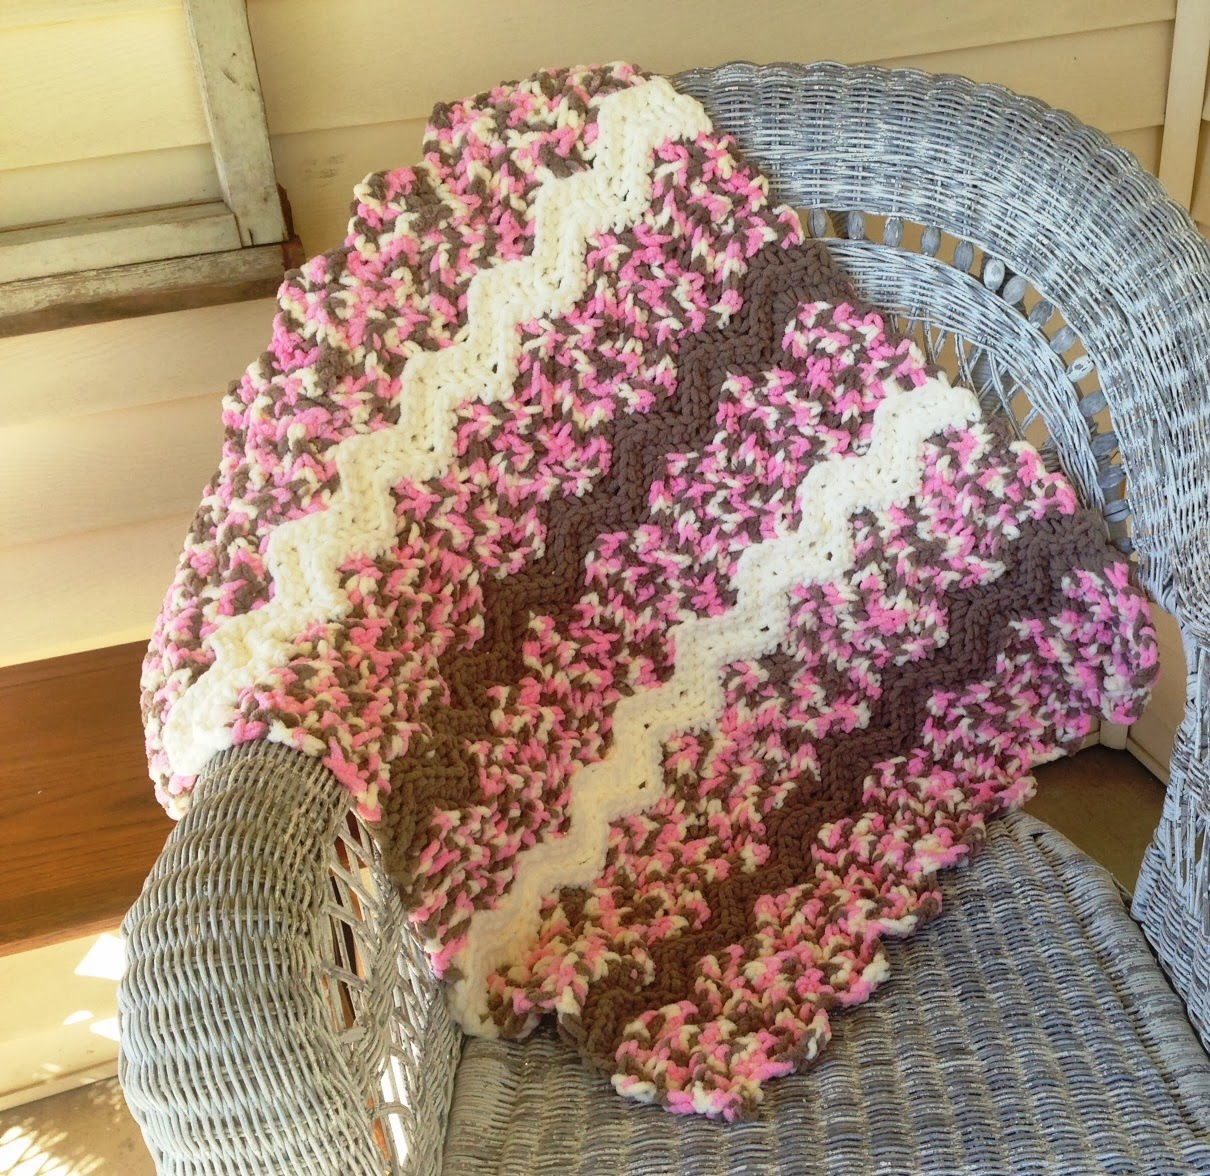 Crochet Patterns Using Bernat Blanket Yarn : New Crochet Bernat Baby Blanket Pattern The Kamden Ripple Blanket